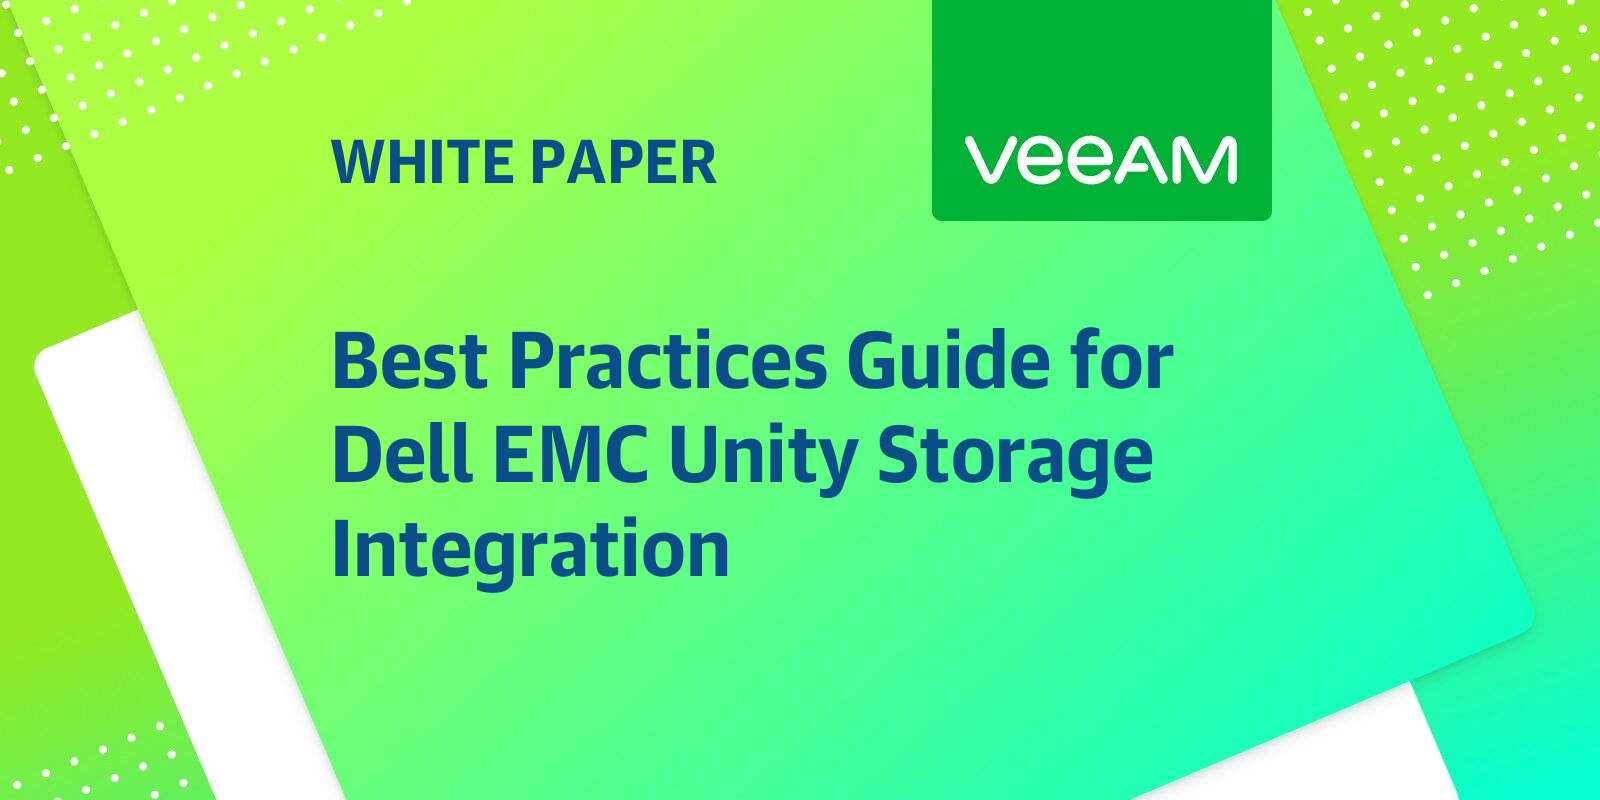 Best Practices Guide for Dell EMC Unity Storage Integration